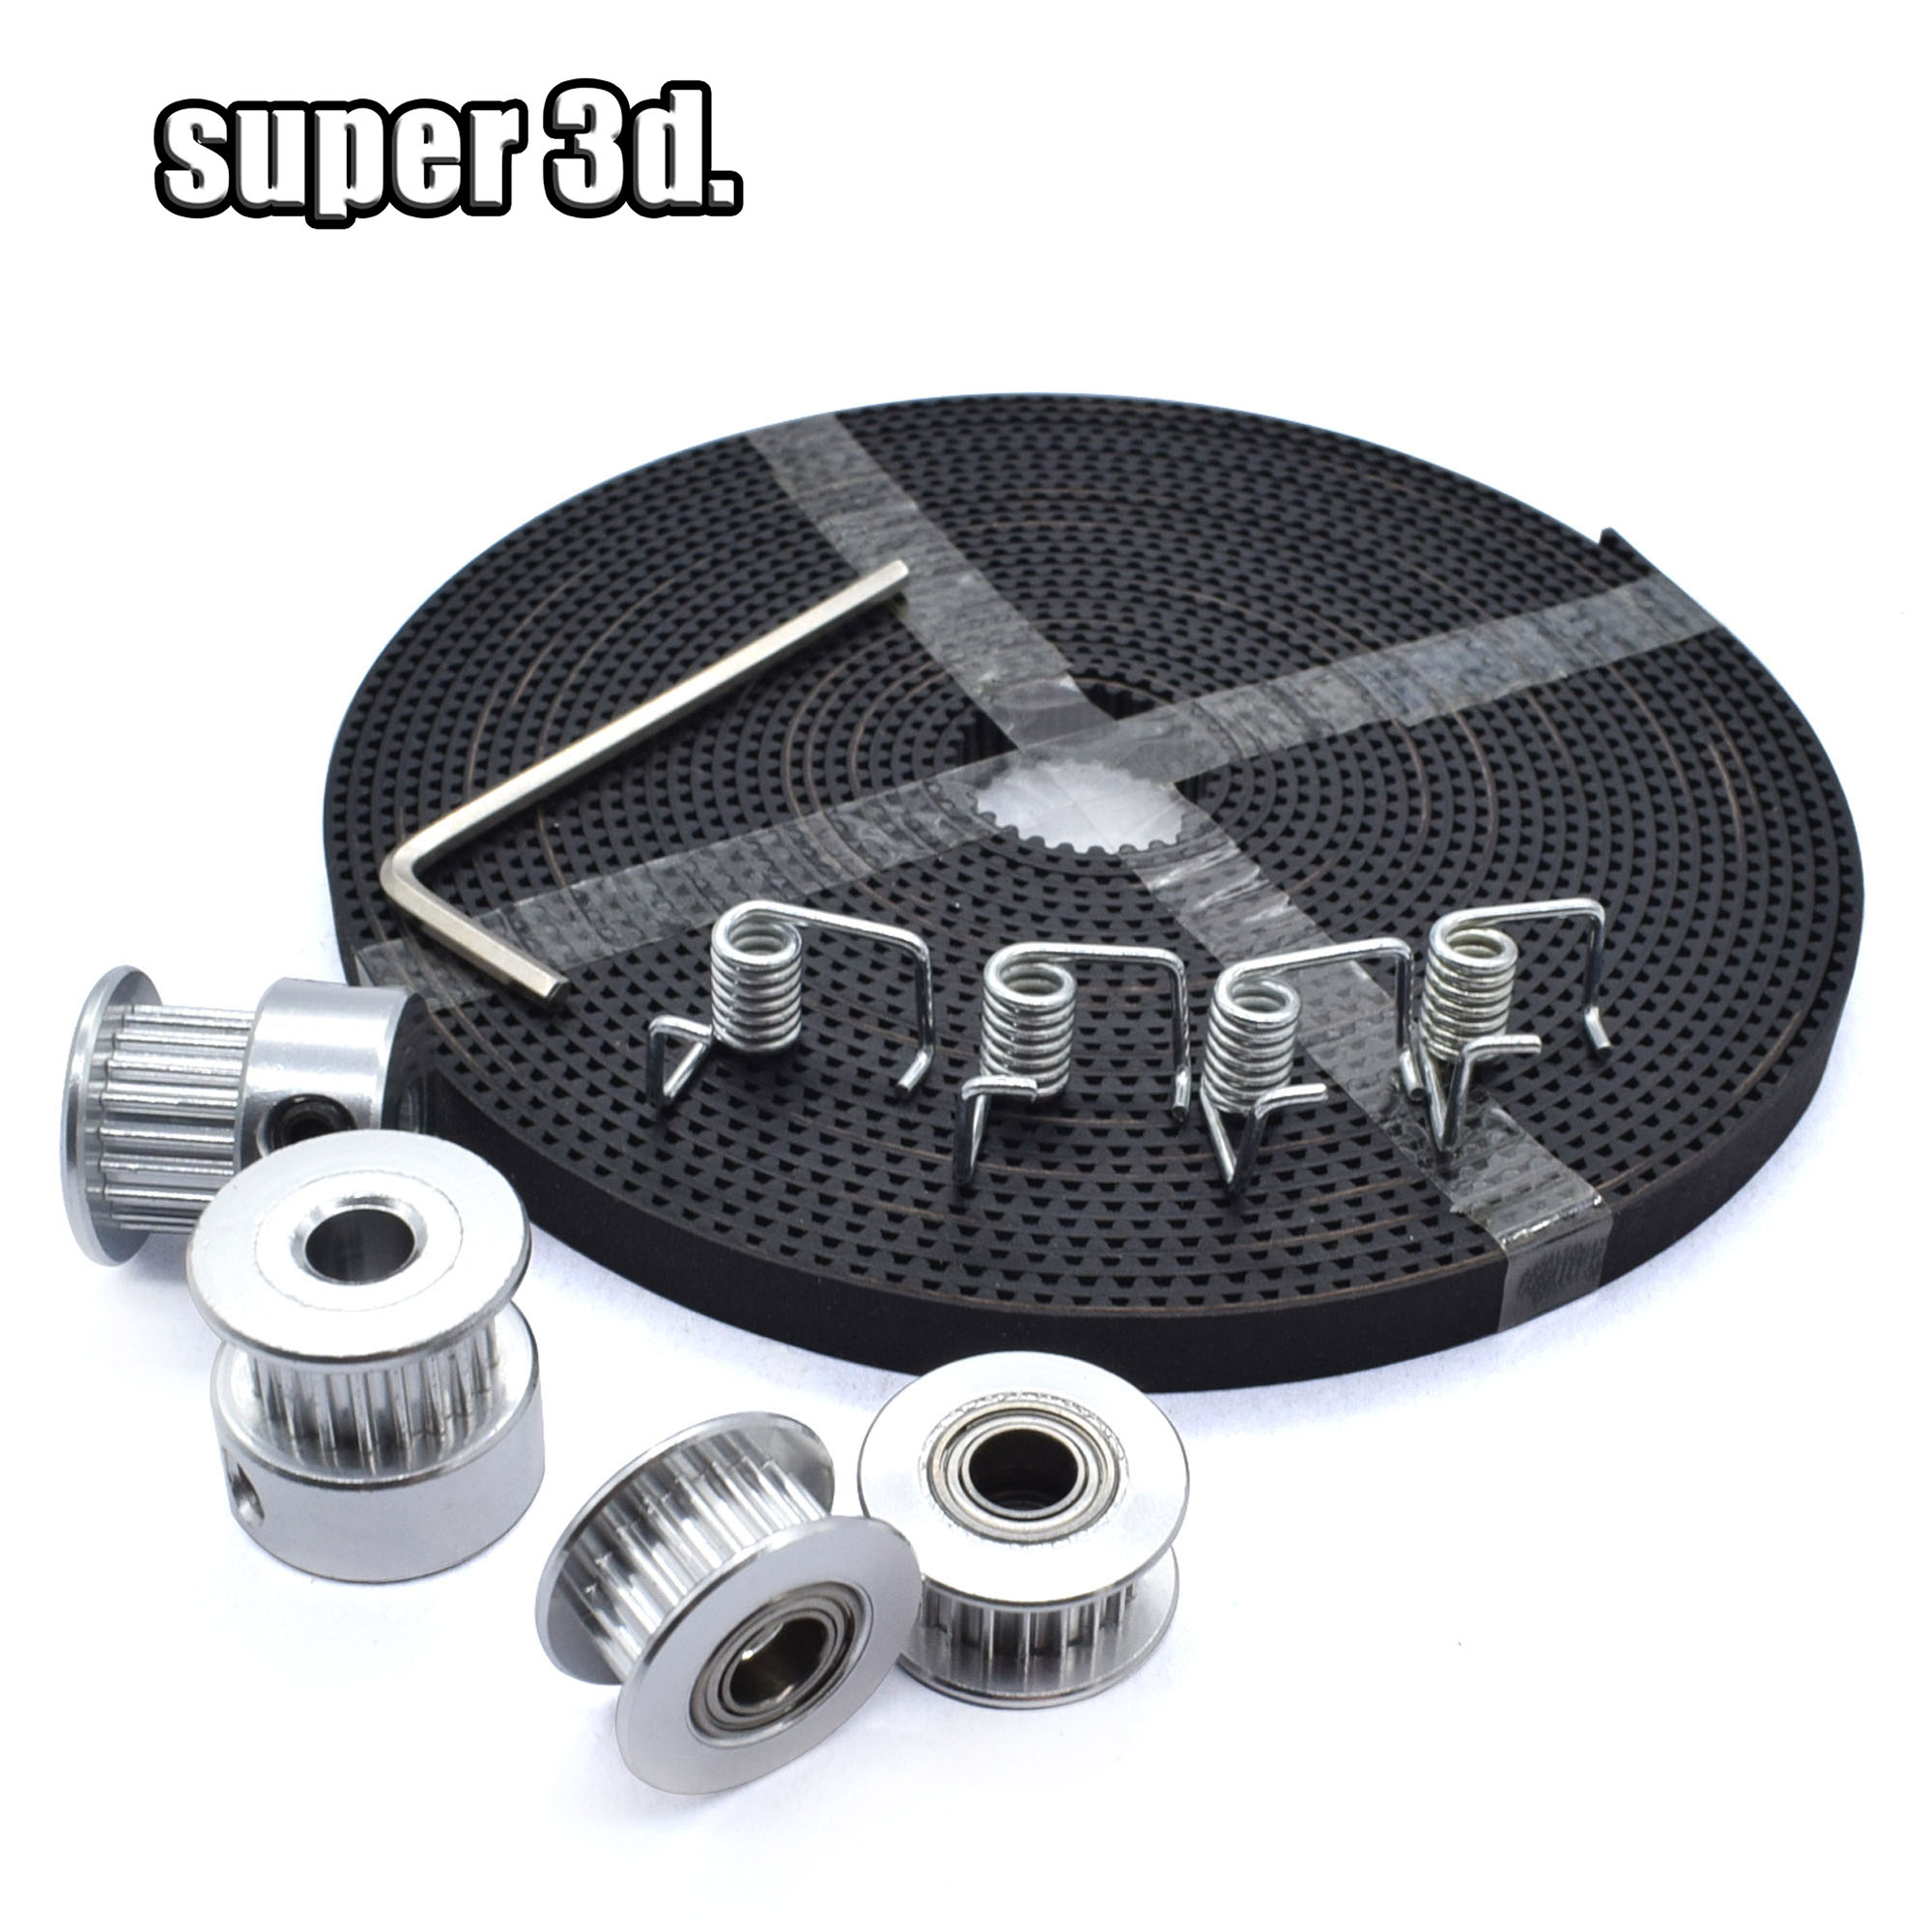 5meters Timing Belt + 2pcs GT2 Timing Pulley + 2pcs Idler Pulley + 4pcs Torque Spring +1pcs Wrench Kit 3D Printer Accessories